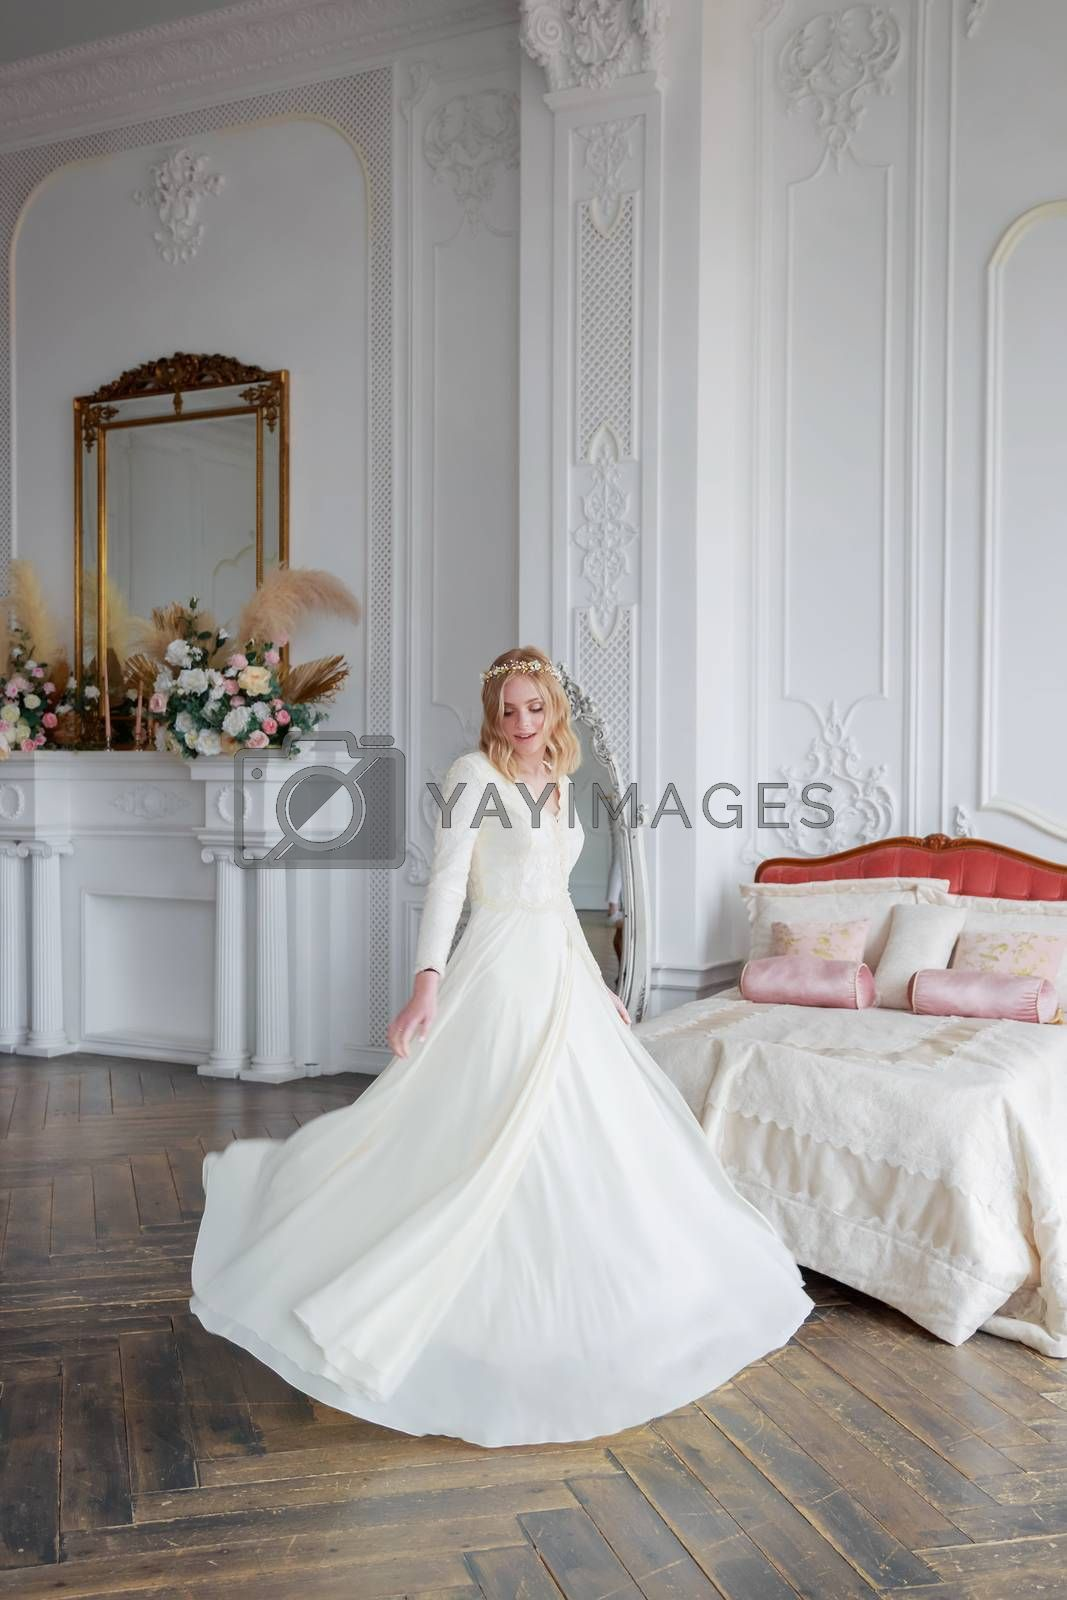 Full-length portrait of a bride in a beautiful lace wedding dress in the interior of a white studio